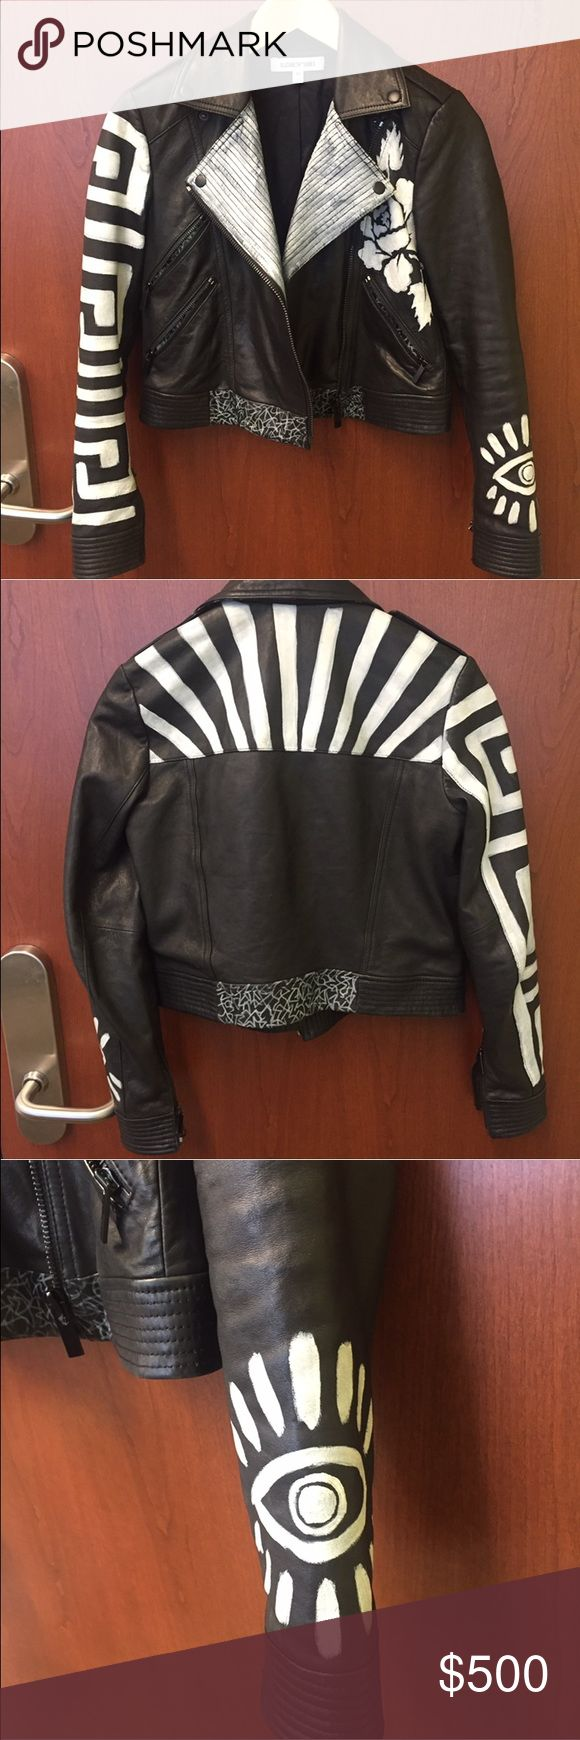 Elizabeth and James Limited Edition Leather Jacket Gorgeous and rare, this Elizabeth and James leather jacket could be yours. In mint condition, the cropped piece features painted detailing including flowers, stripes and an evil eye. 100% real leather and super chic!  You are bound to strand out! Elizabeth and James Jackets & Coats